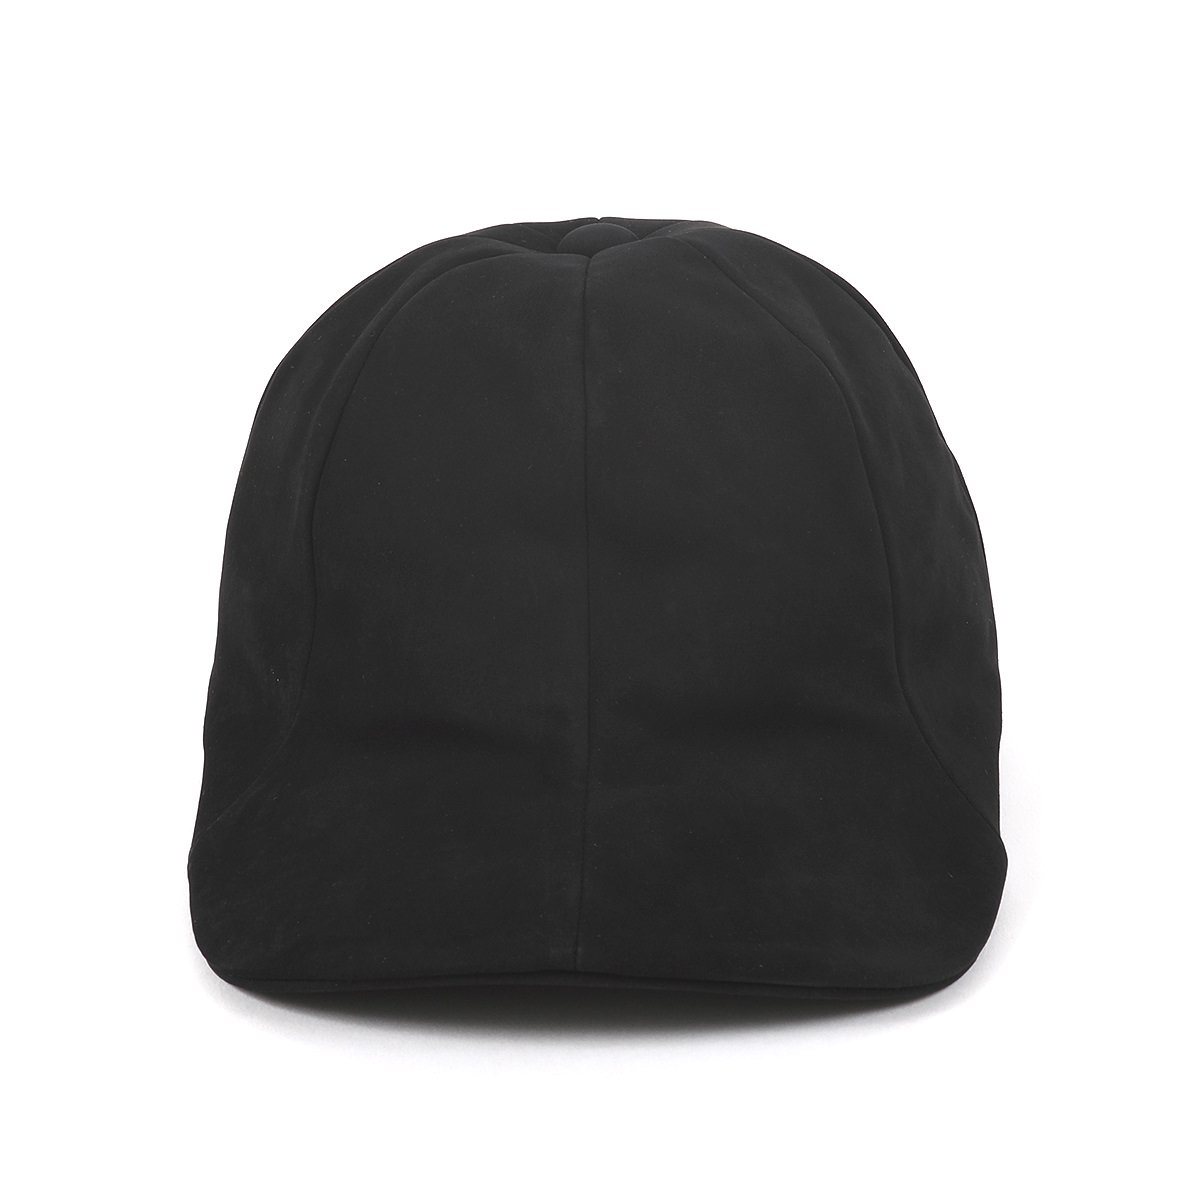 NUBUCK 8 PANEL DRAIPING CAP<img class='new_mark_img2' src='https://img.shop-pro.jp/img/new/icons41.gif' style='border:none;display:inline;margin:0px;padding:0px;width:auto;' />